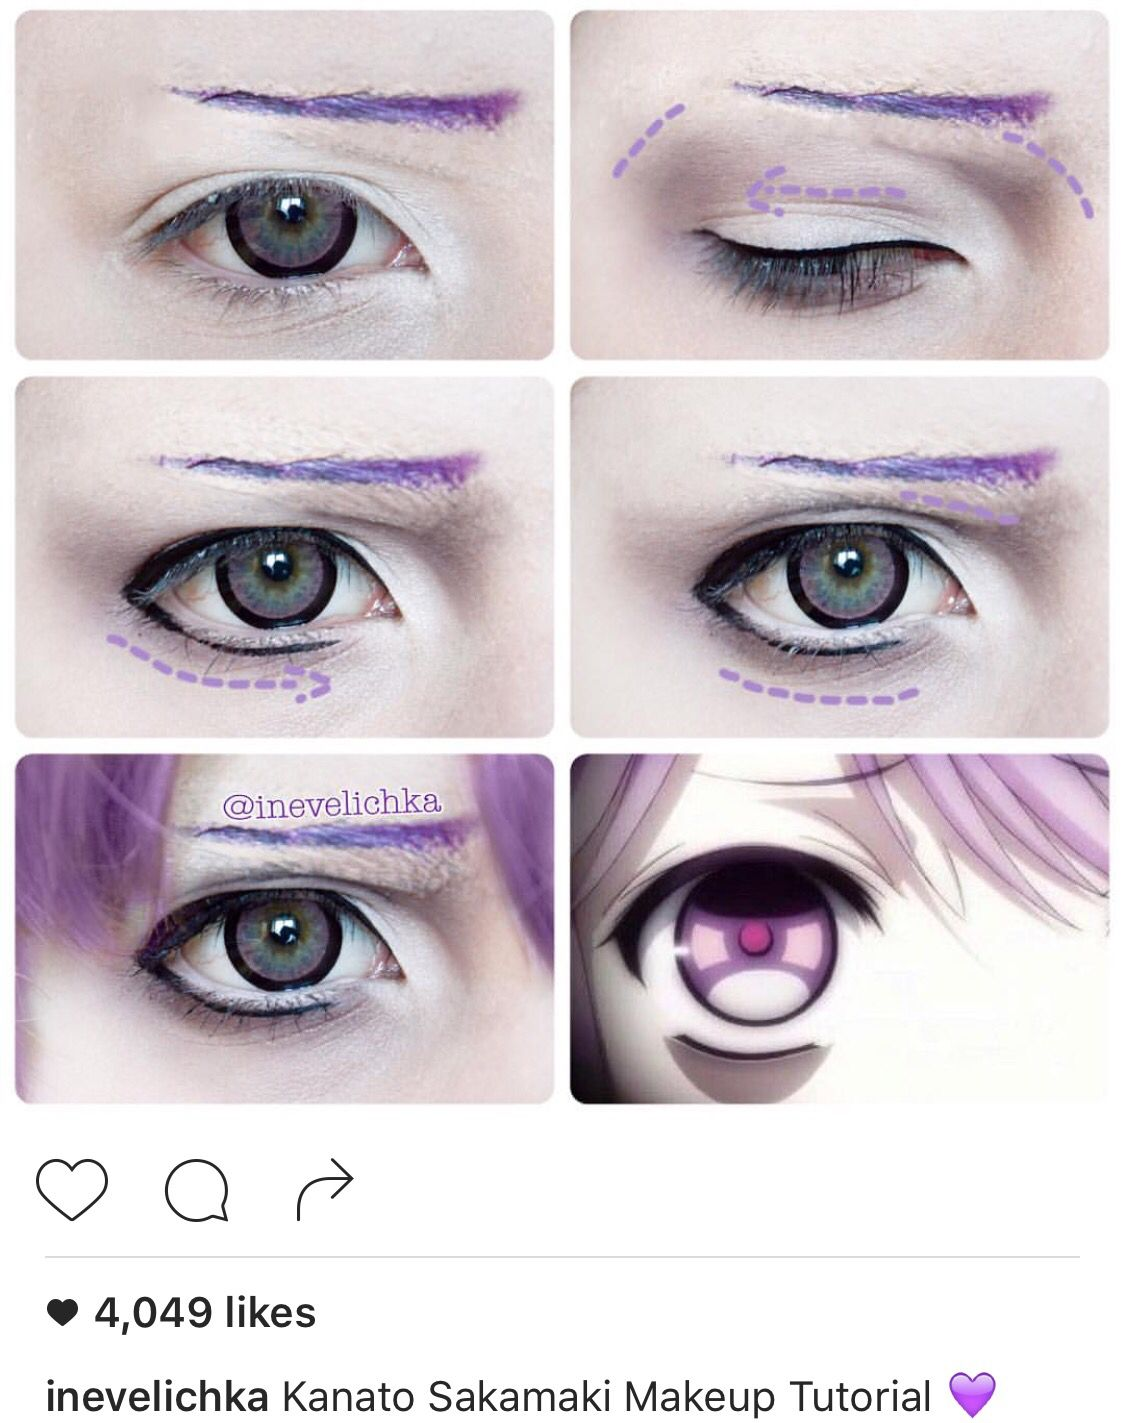 Kanato sakamaki cosplay make up pinterest kanato sakamaki kanato sakamaki makeup tutorial lenses from hope this will be helpful i dont take requests baditri Gallery